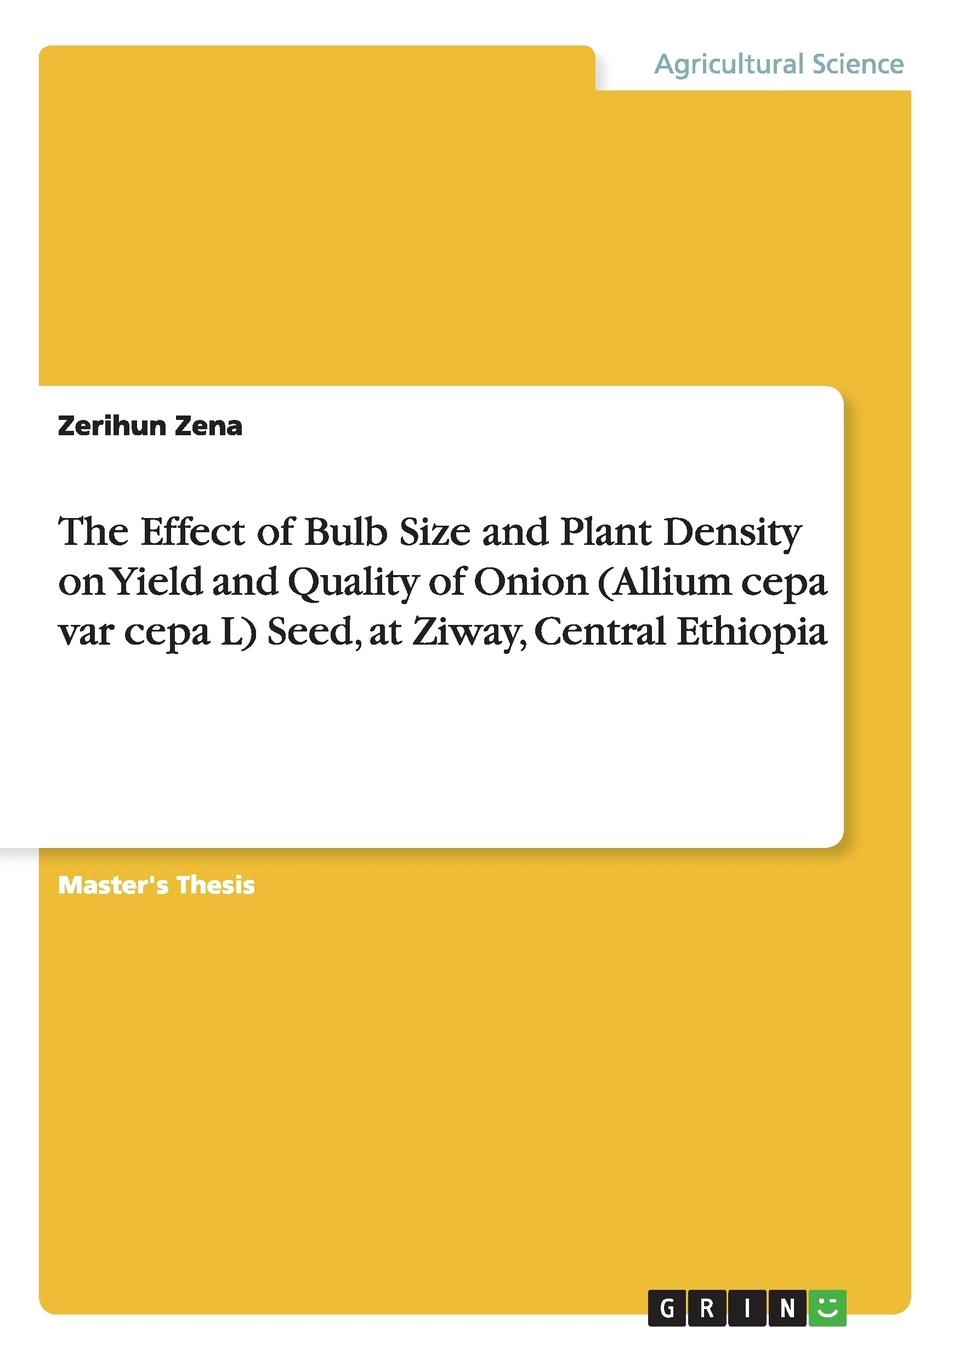 Zerihun Zena The Effect of Bulb Size and Plant Density on Yield and Quality of Onion (Allium cepa var cepa L) Seed, at Ziway, Central Ethiopia role of seeding rates and cutting stages on yield and quality